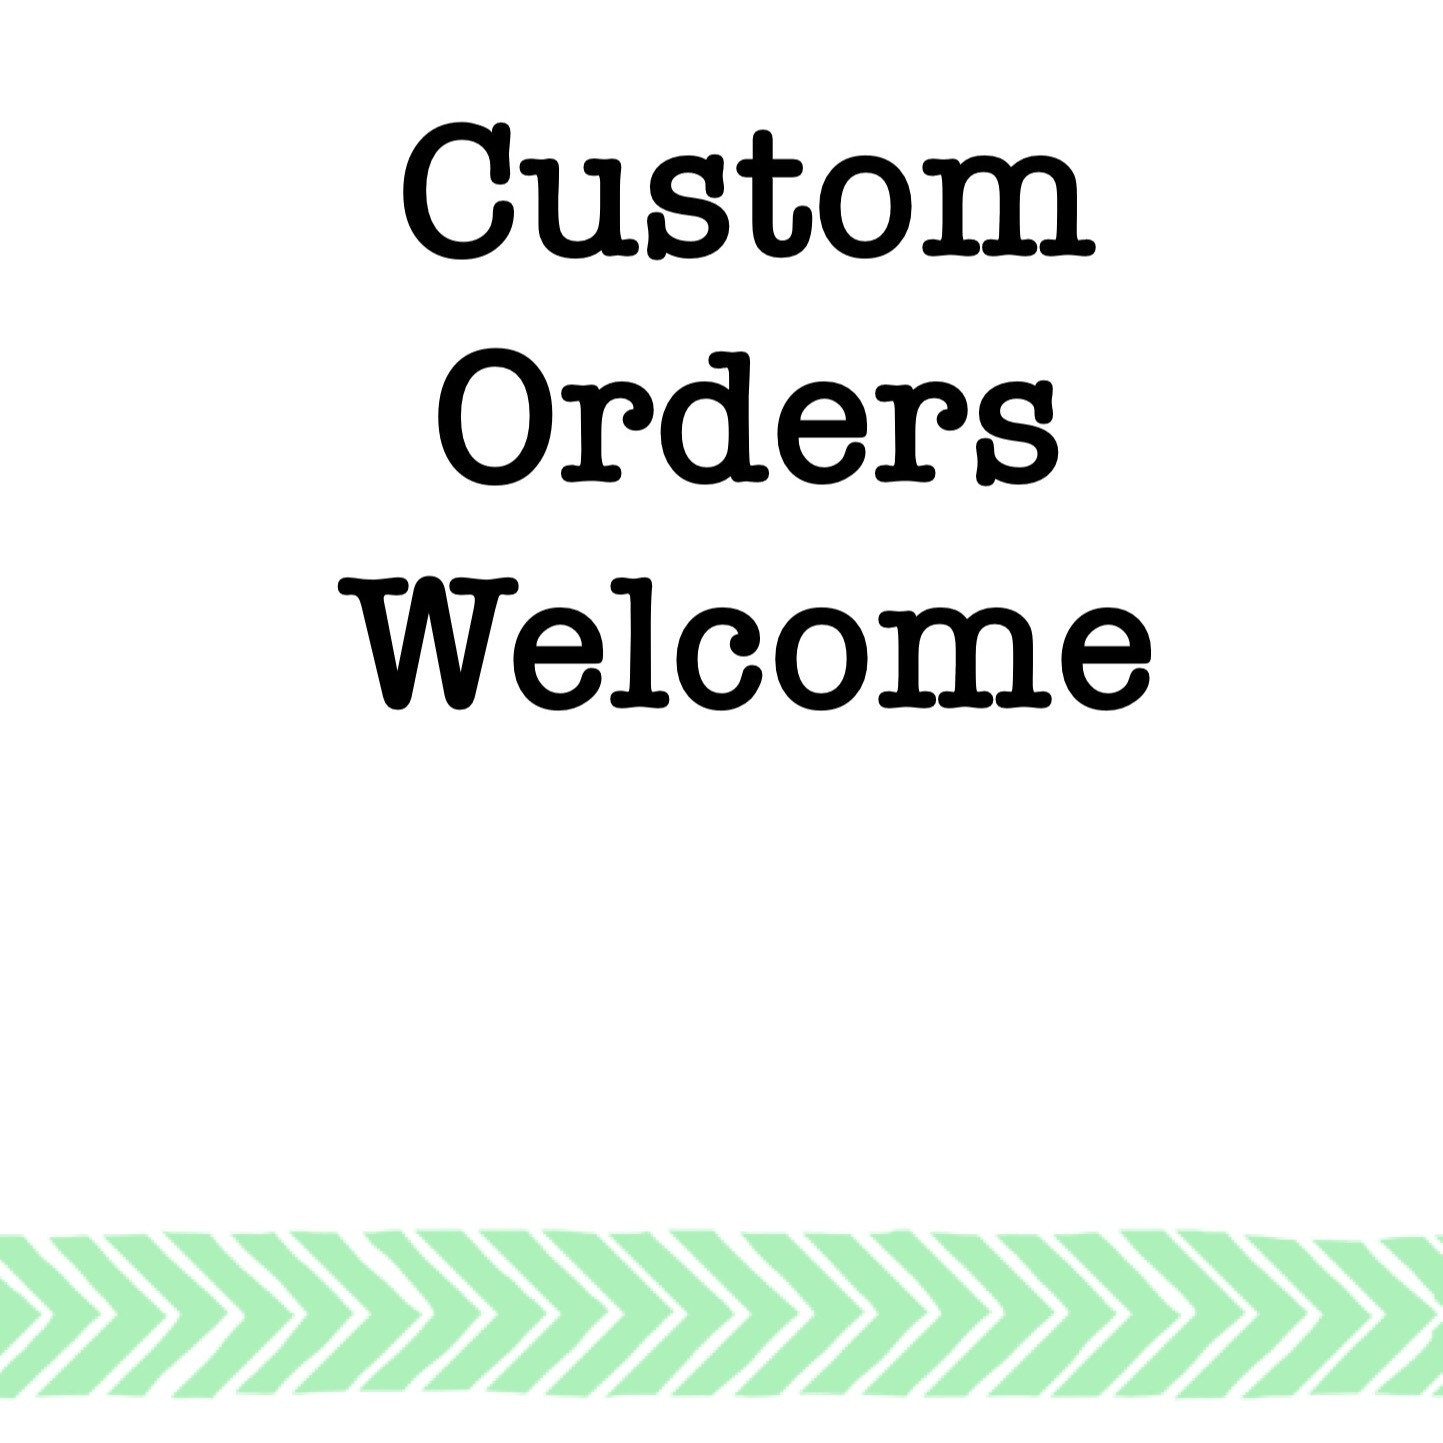 Email me for all custom order inquiries.